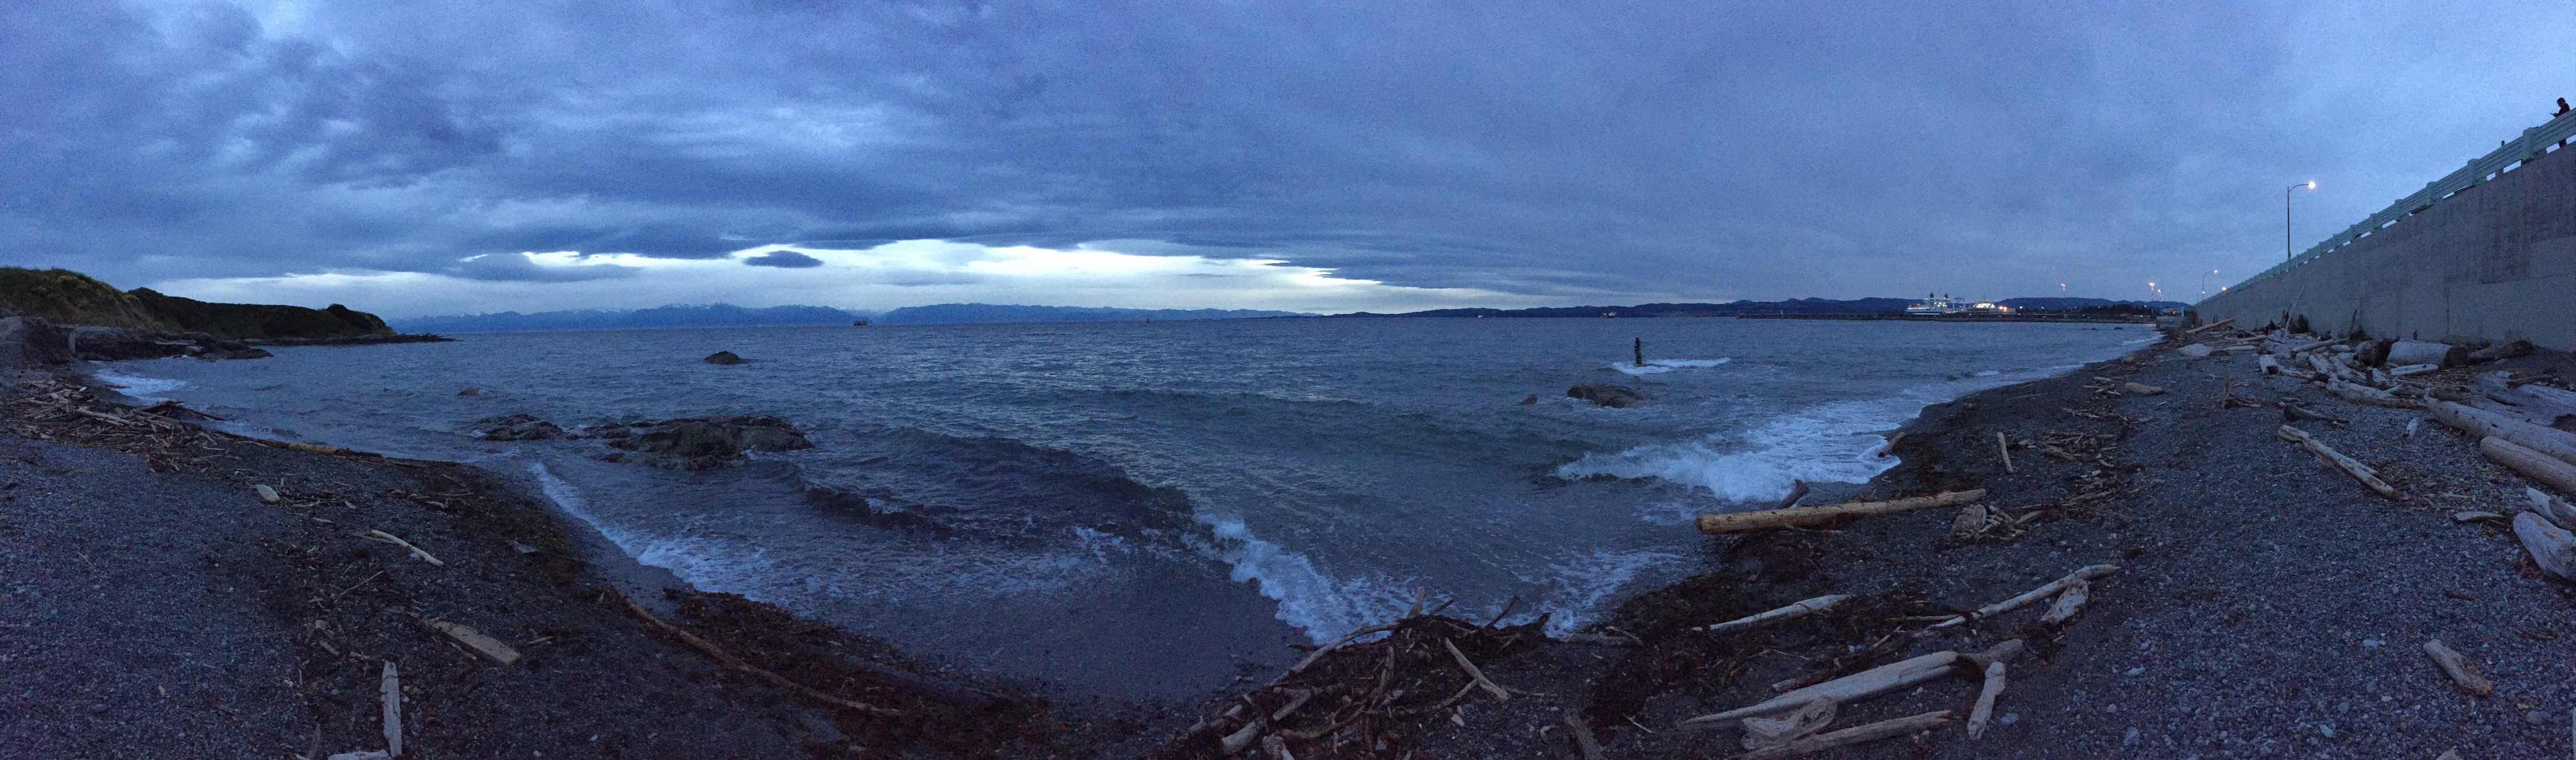 panoramic shot of a rocky shoreline with dark blue tones throughout